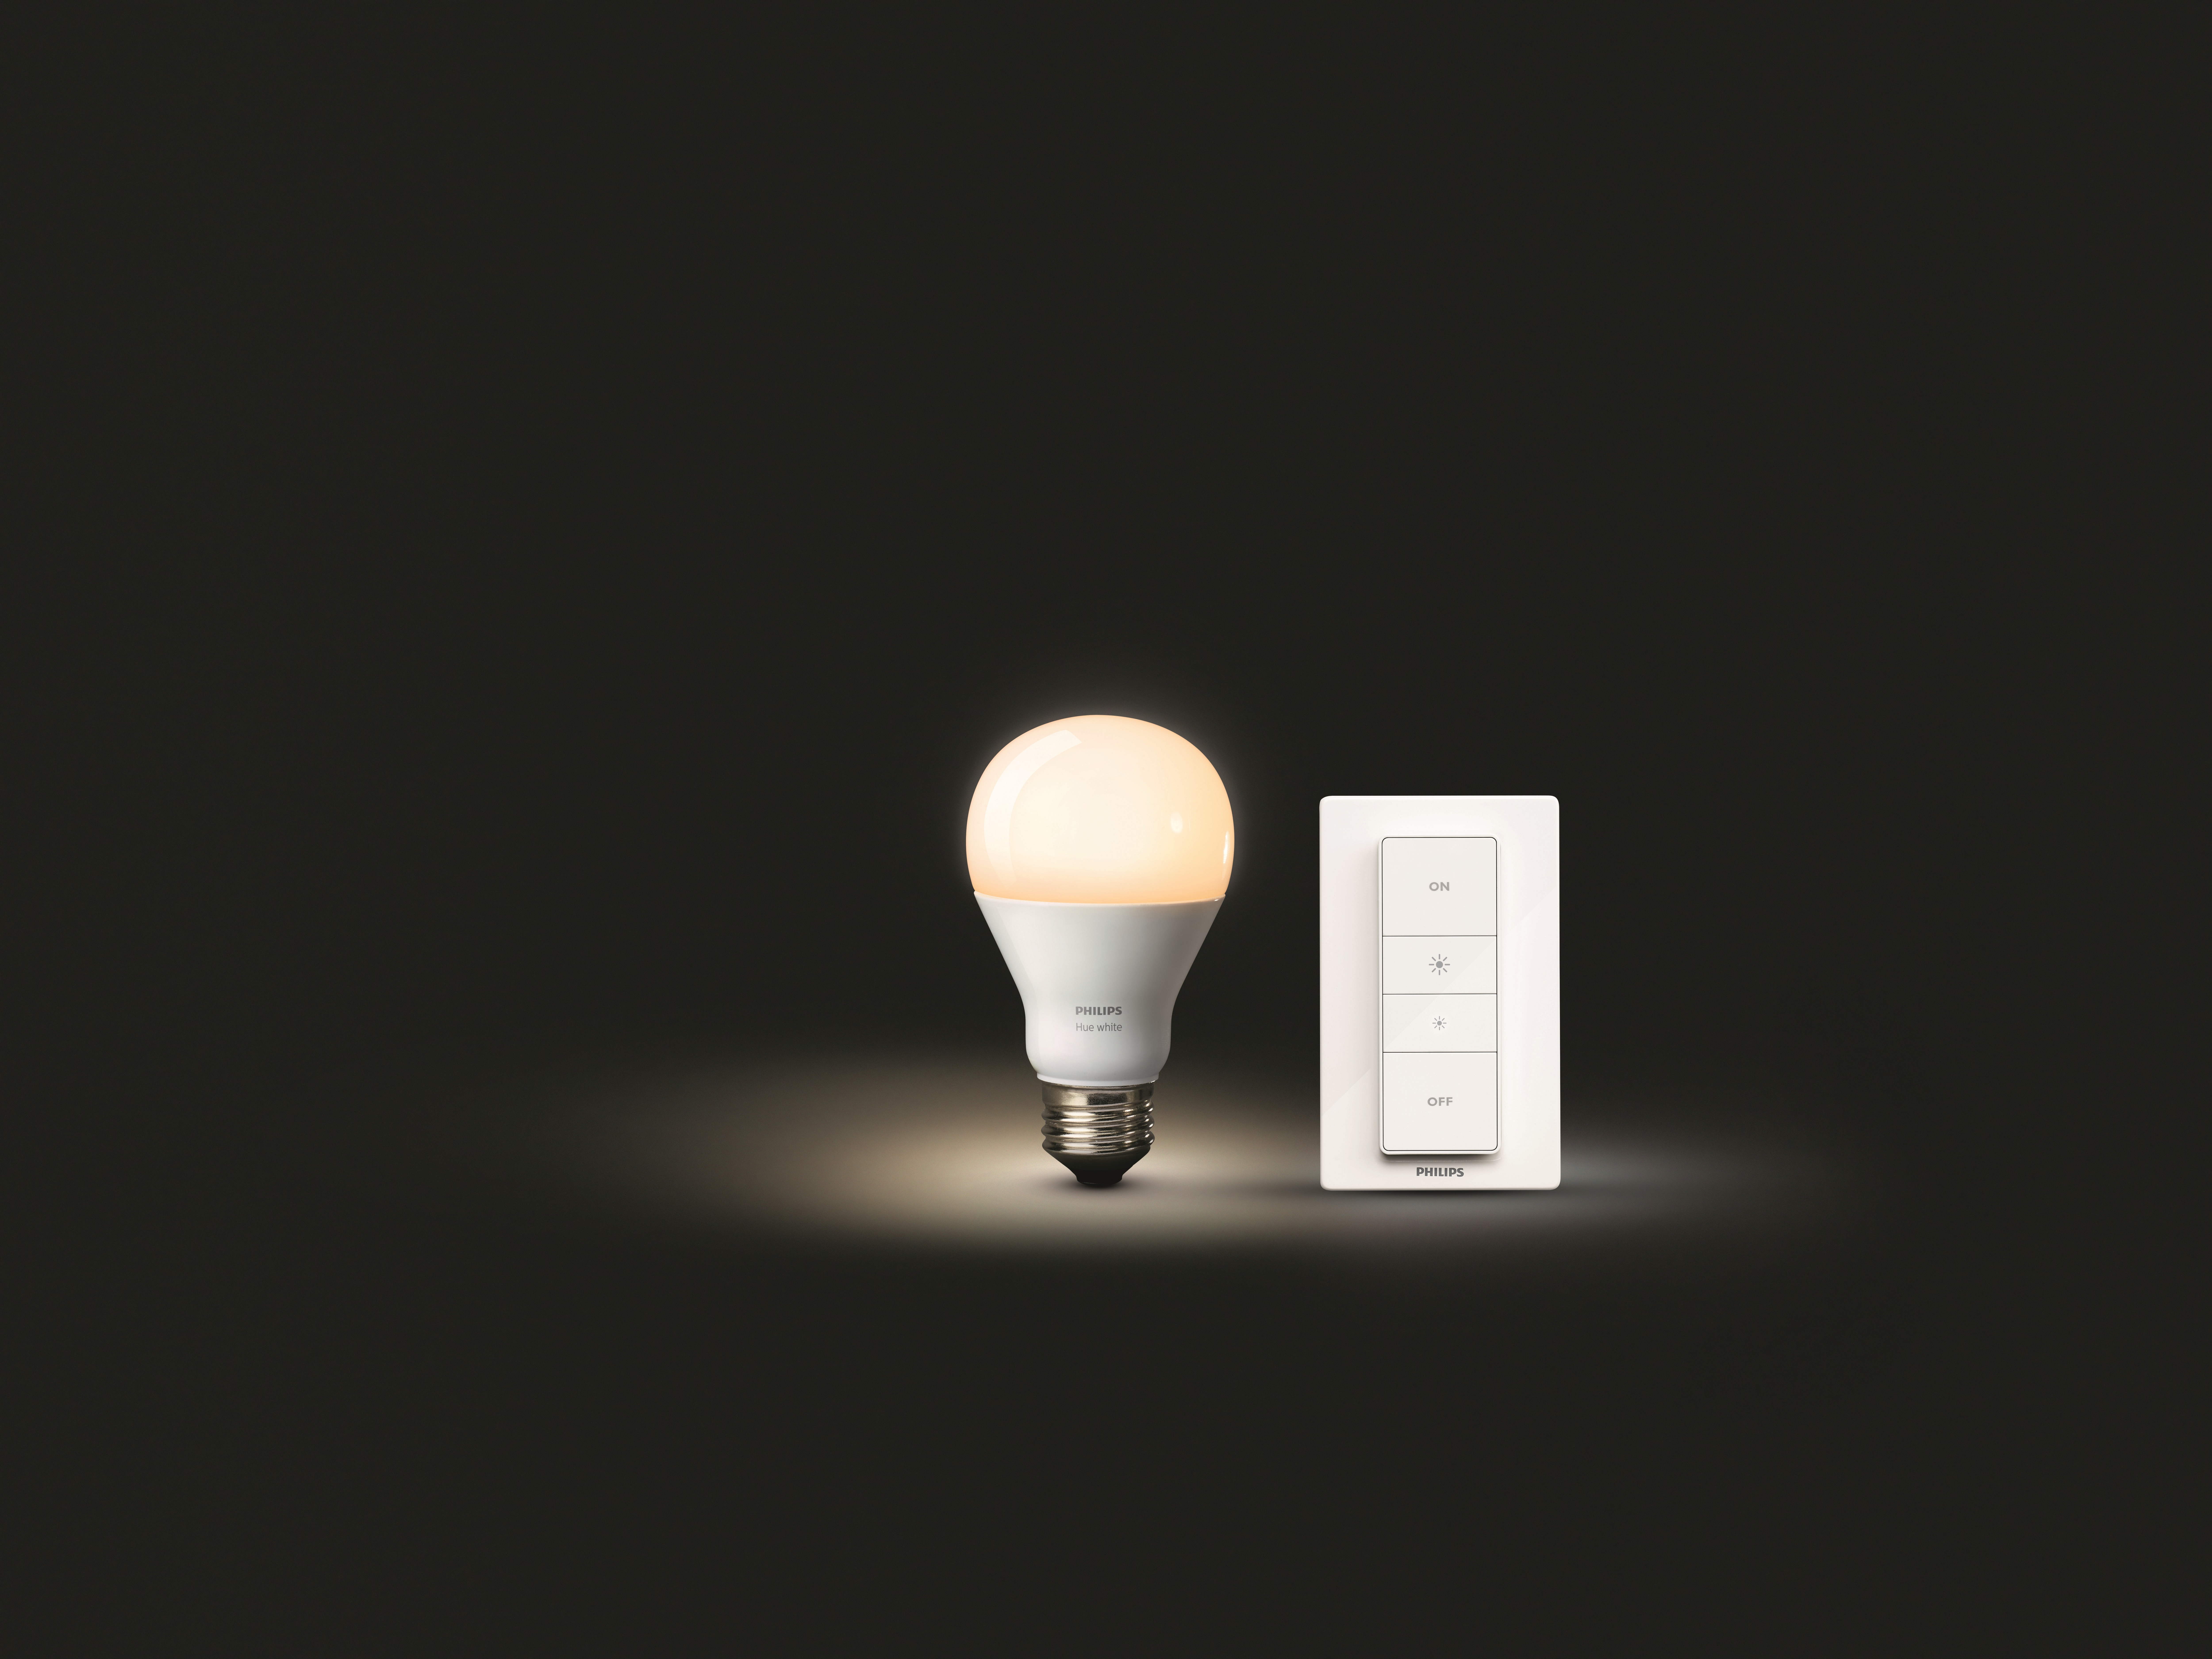 new wireless dimmer for philips hue smart lights and more siliconangle. Black Bedroom Furniture Sets. Home Design Ideas